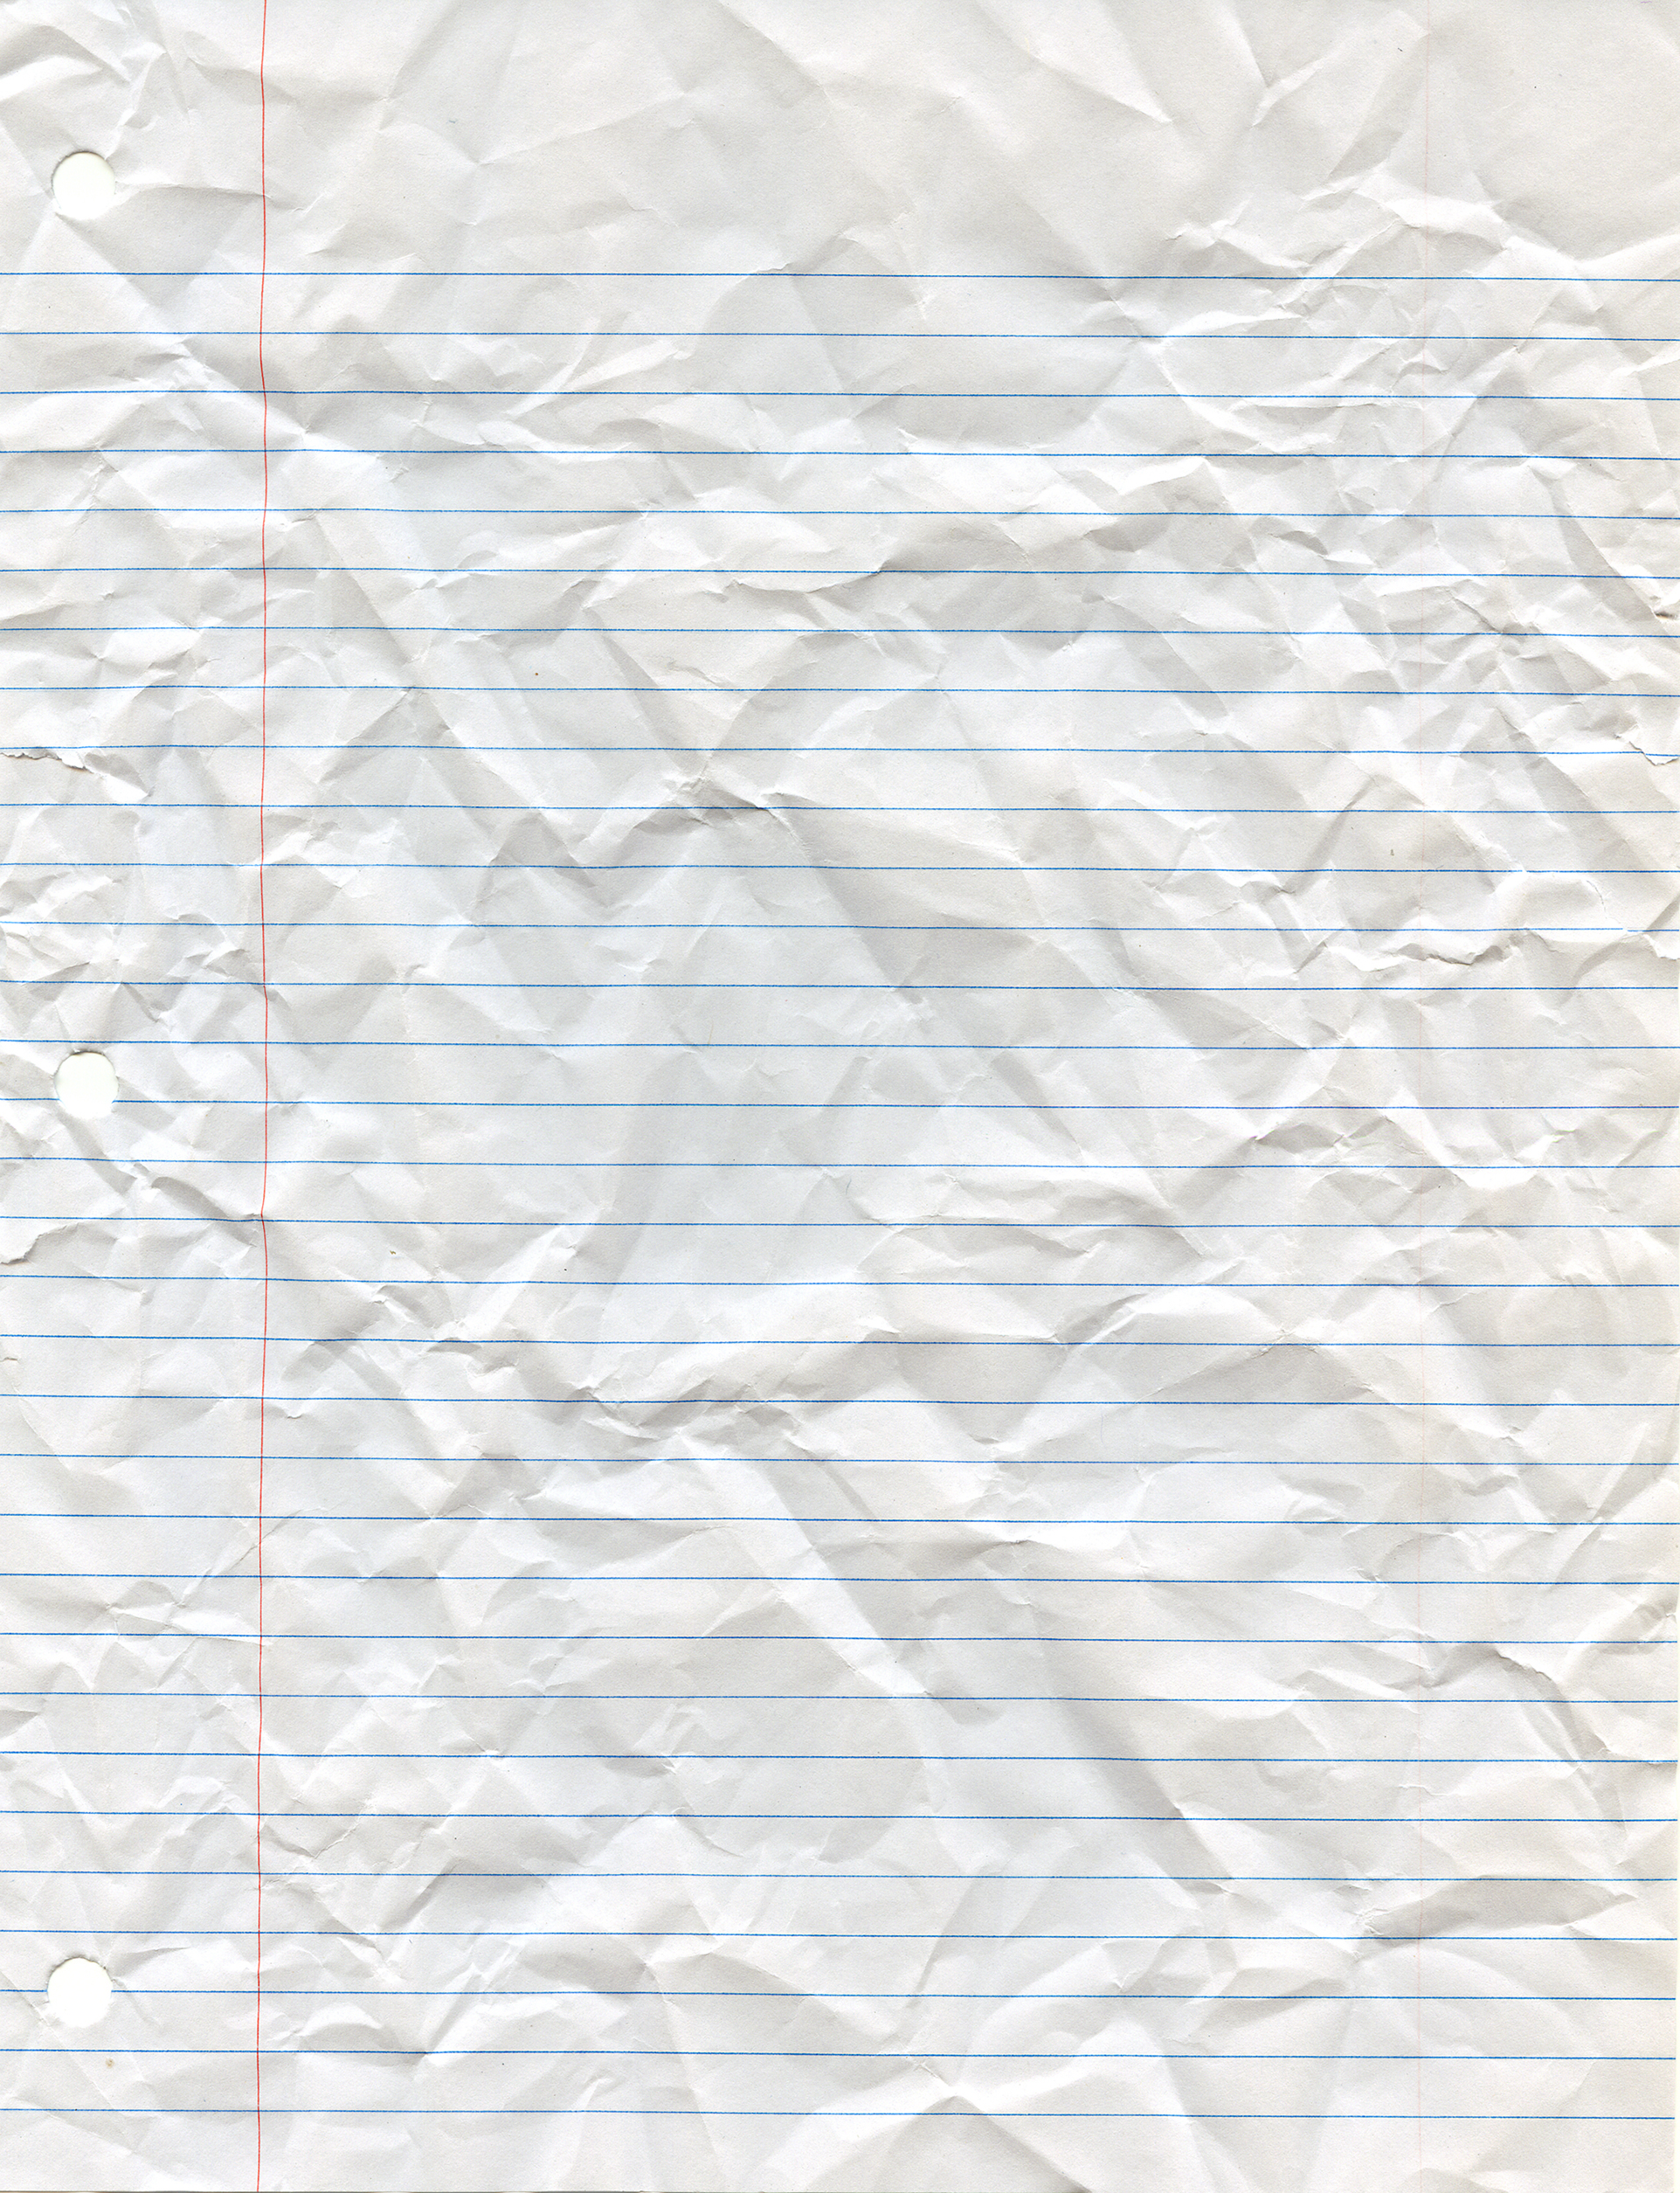 Lined Paper Background Romefontanacountryinncom